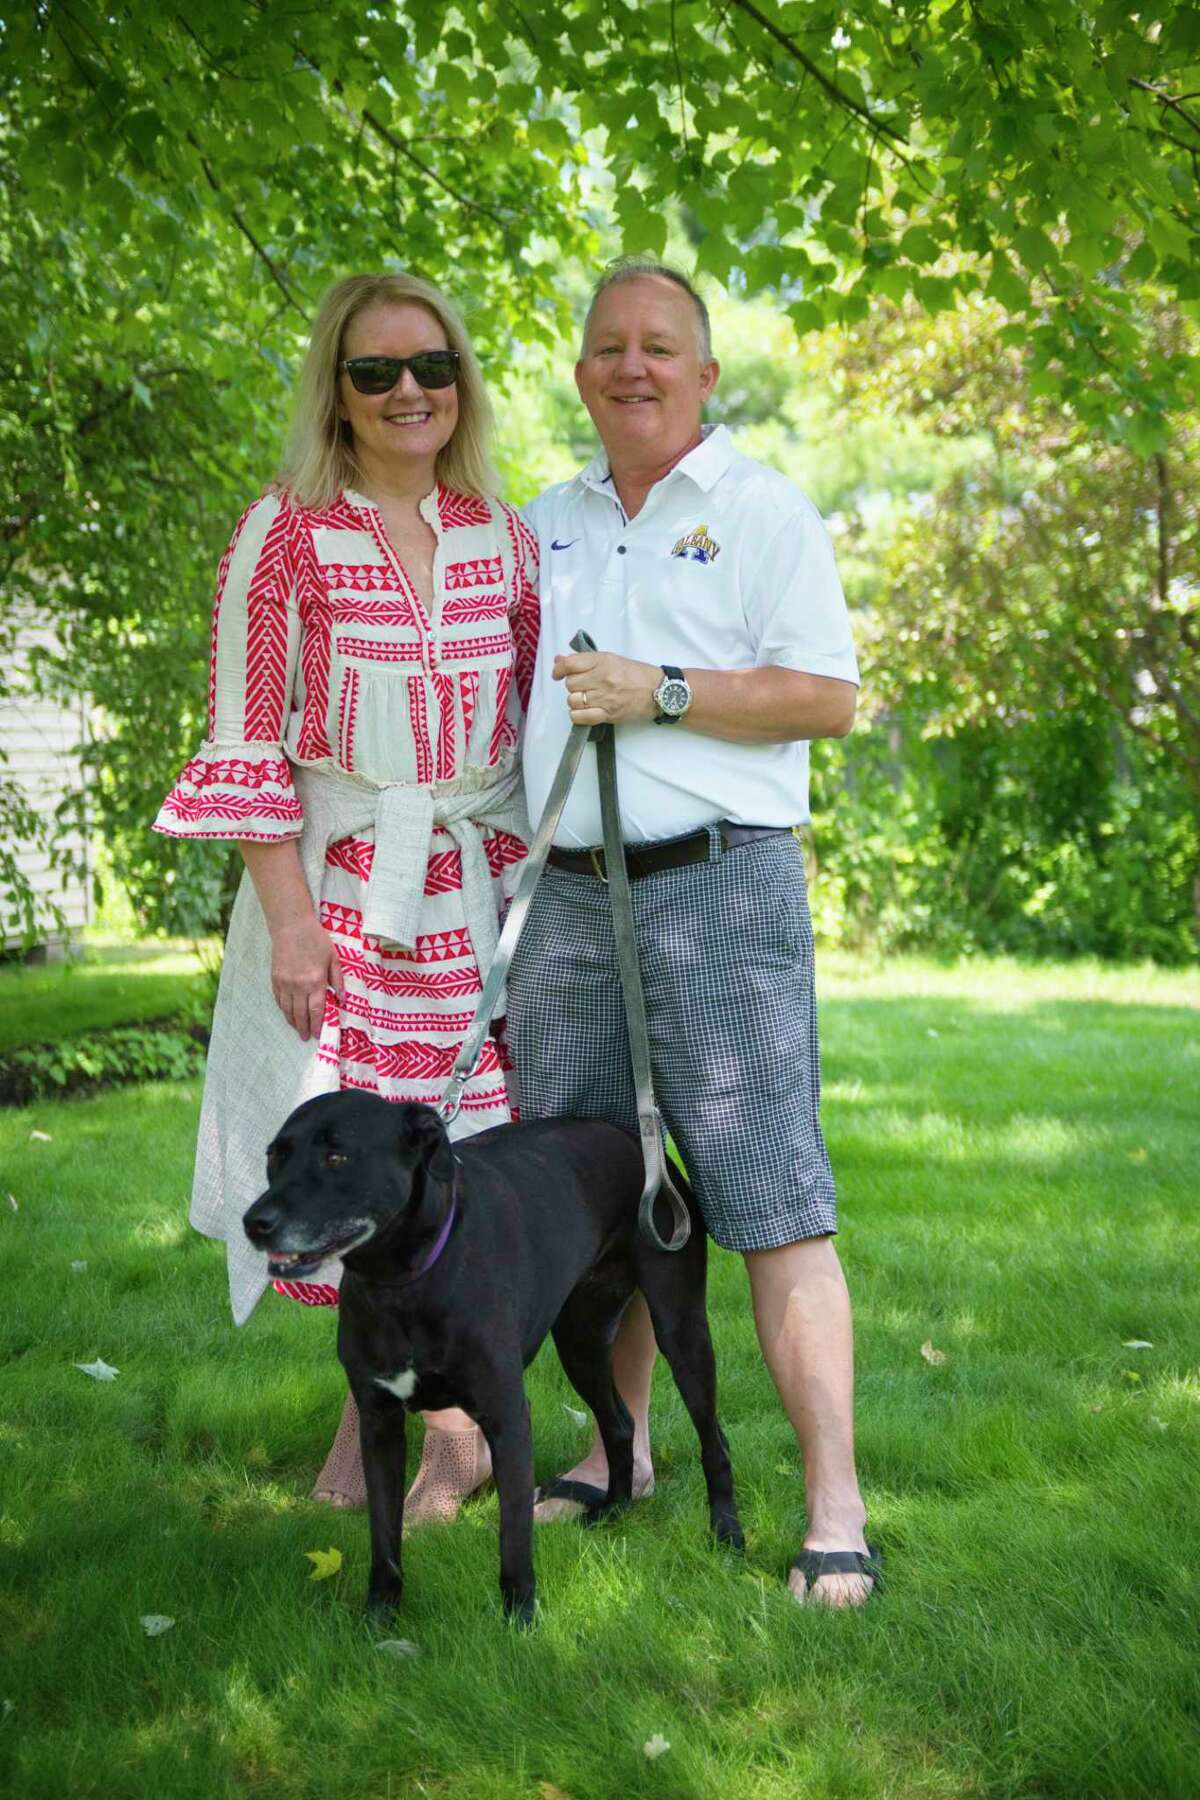 Times Union columnist and Writers Institute Director Paul Grondahl with his wife Mary O'Donnell Grondahl and their dog Lily on Tuesday, July 7, 2020, in Guilderland, N.Y. Grondahl survived a nasty bout with bacterial pneumonia that doctors initially believed was COVID-19. (Paul Buckowski/Times Union)